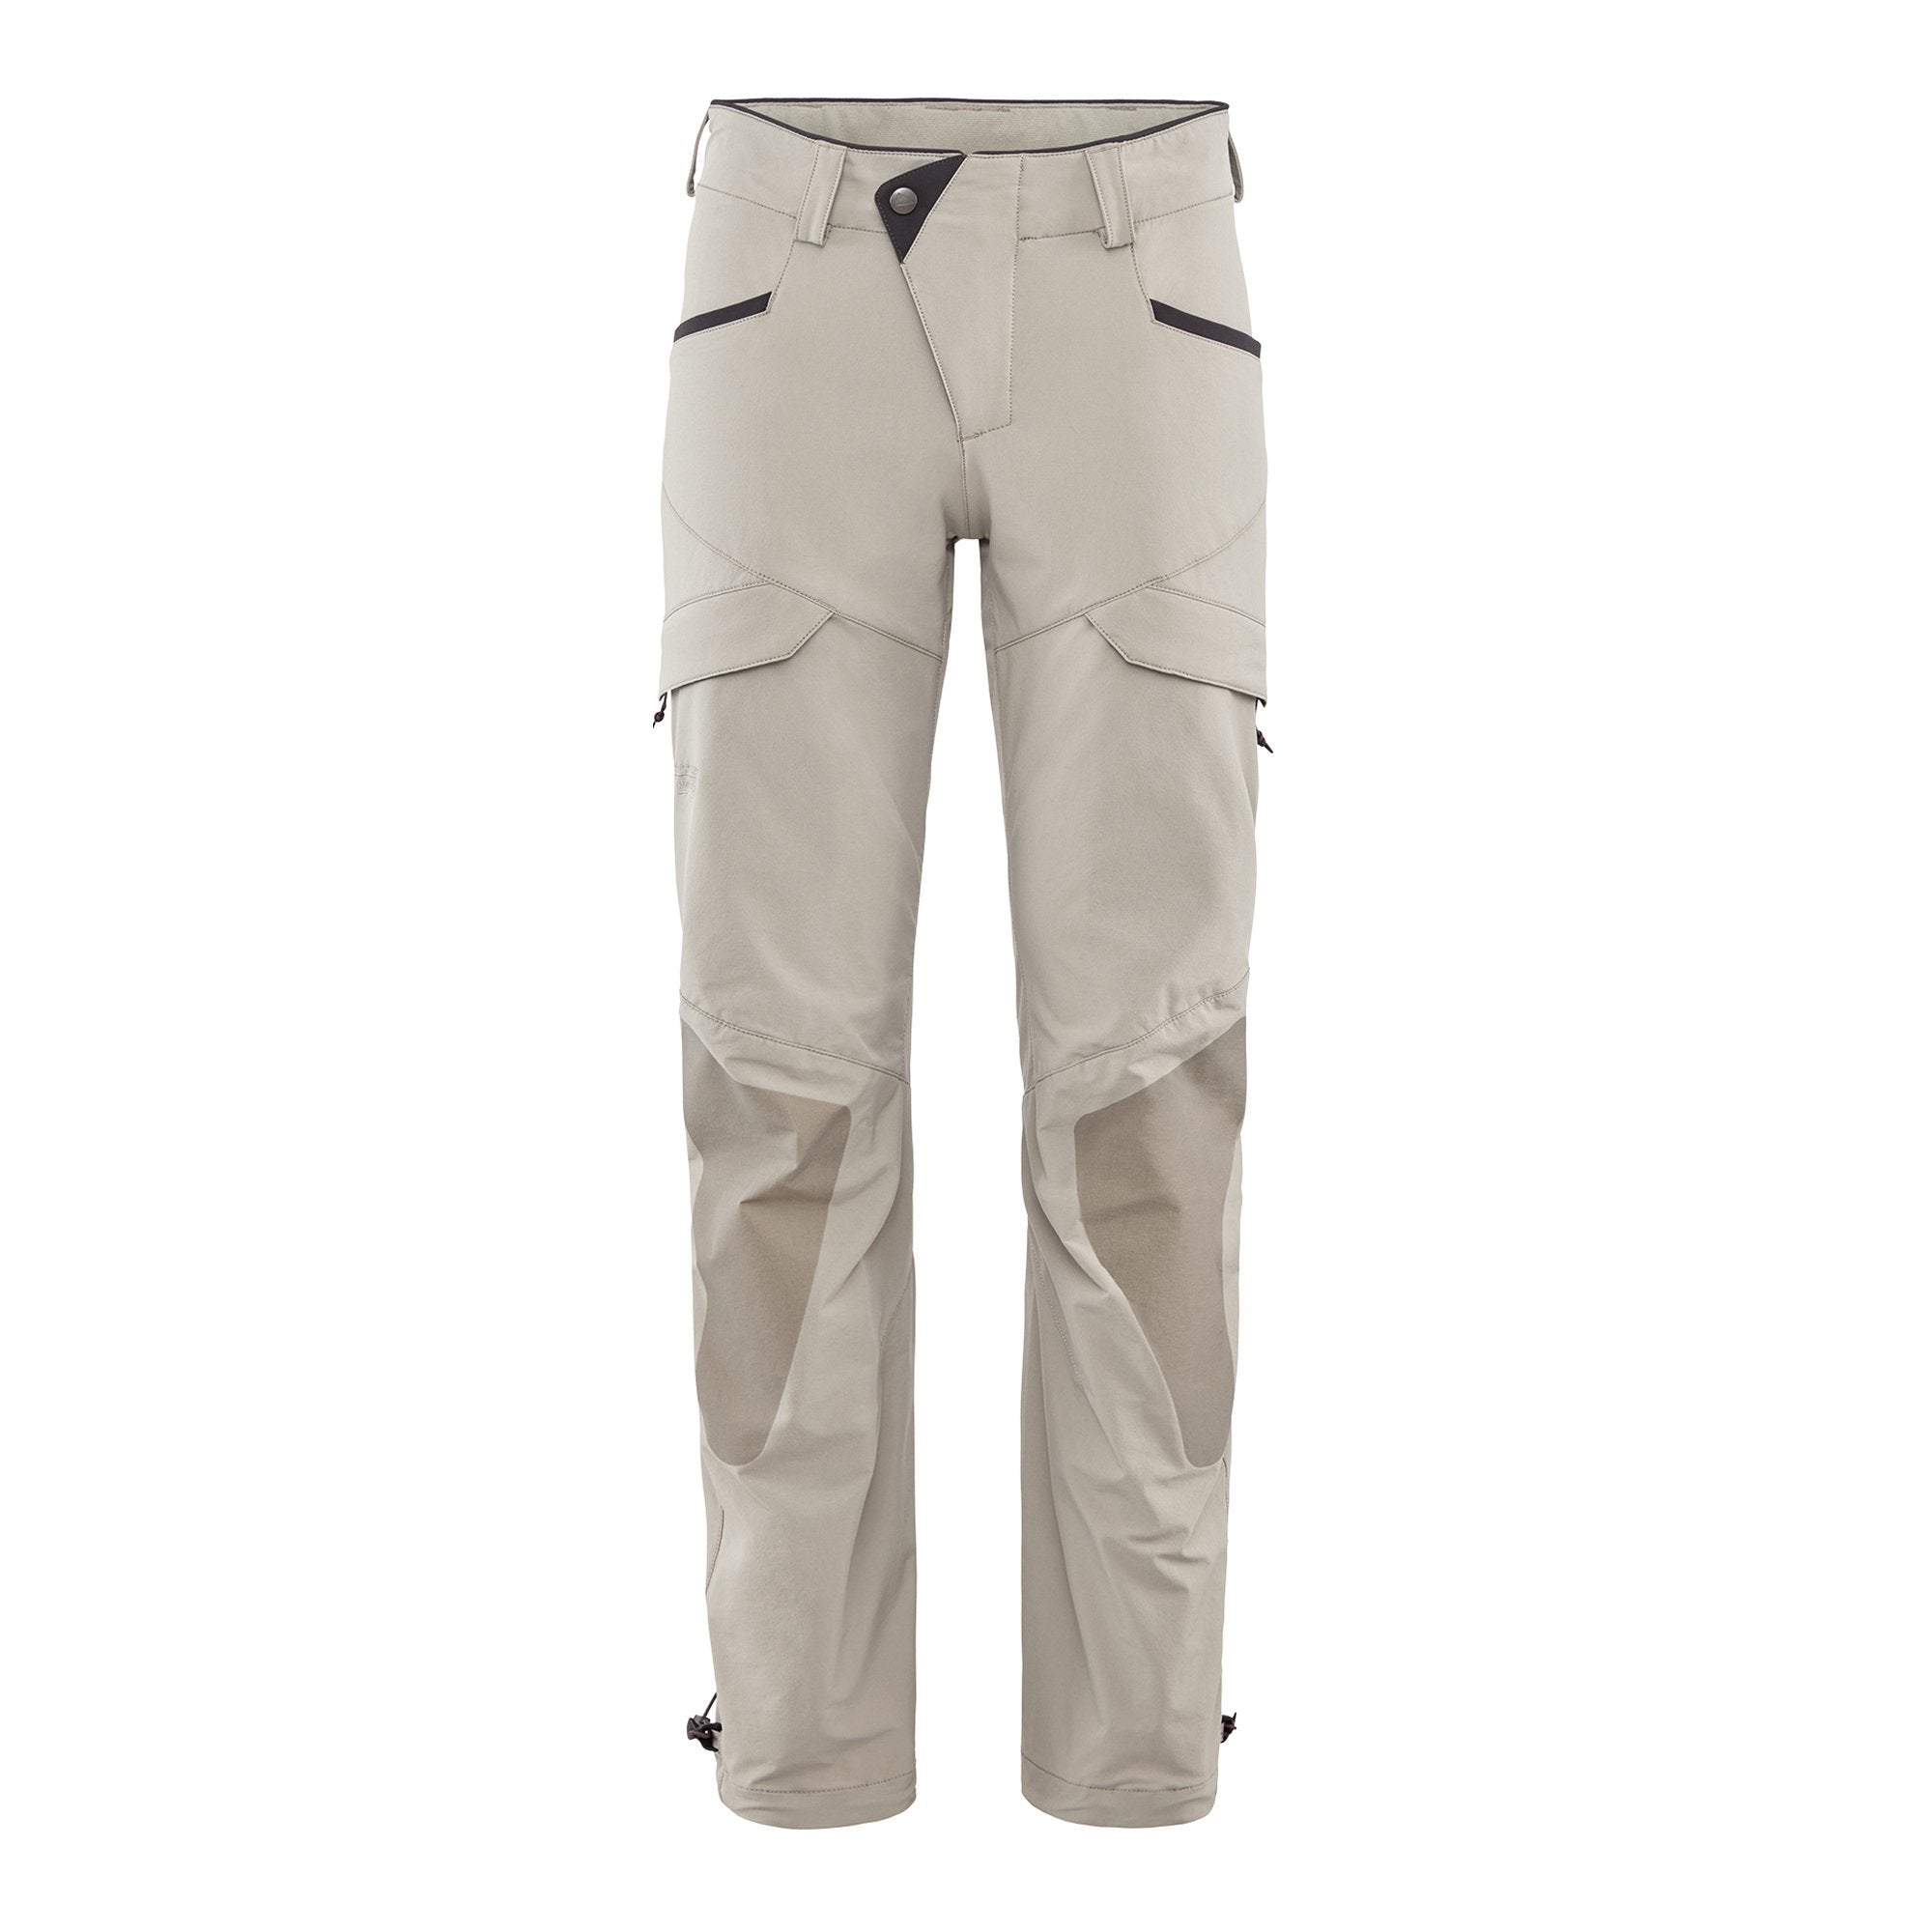 Misty 2.0 Pants - Flint Grey - Dam - Vindpinad